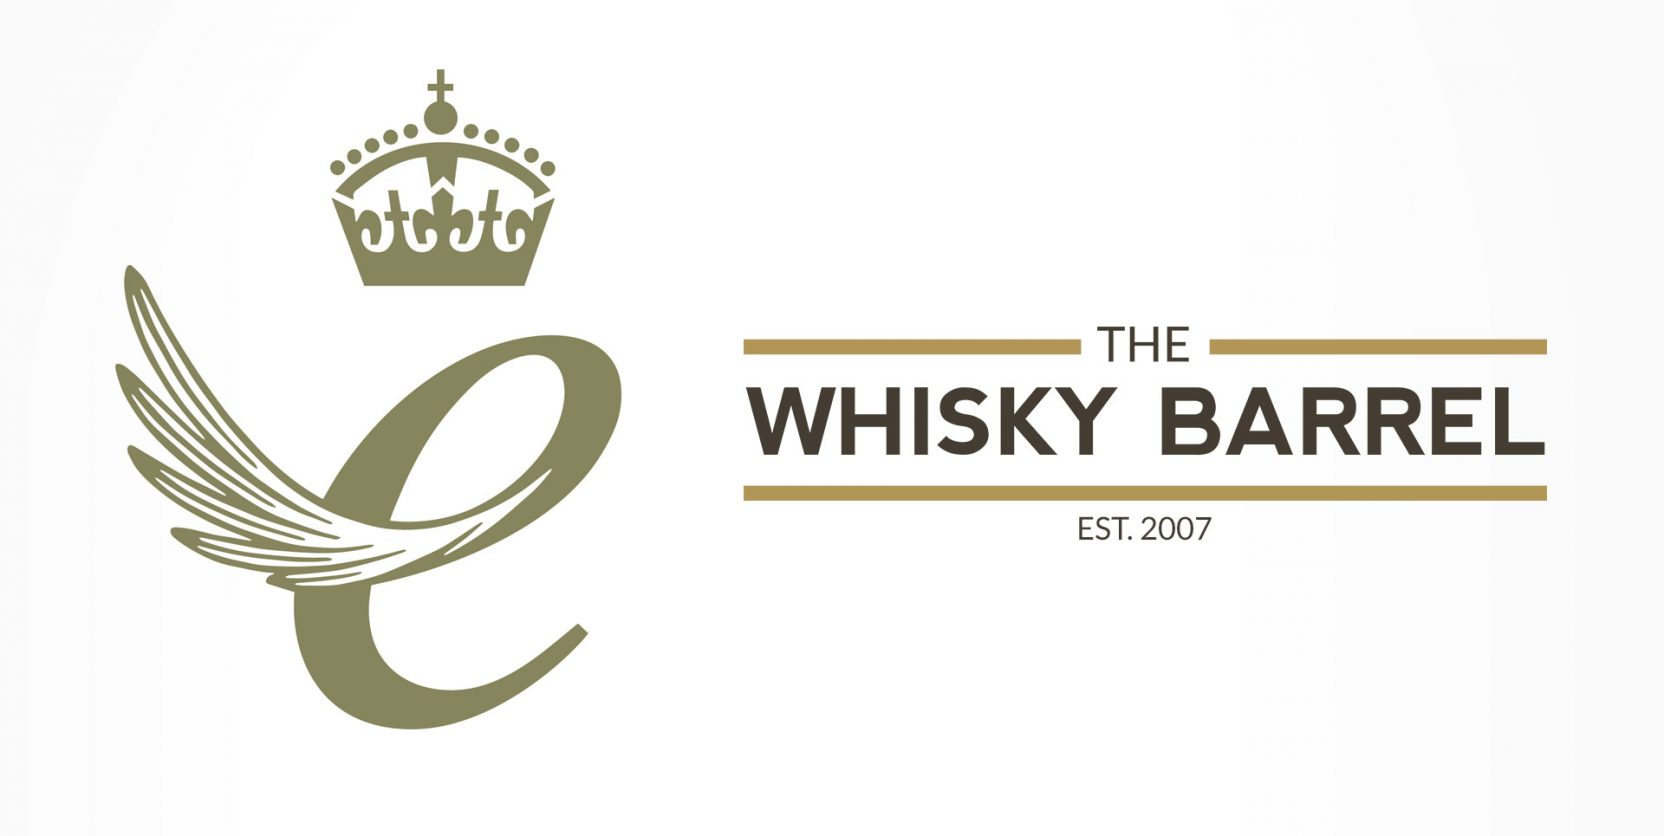 Thew Whisky Barrel Wins Queens Award